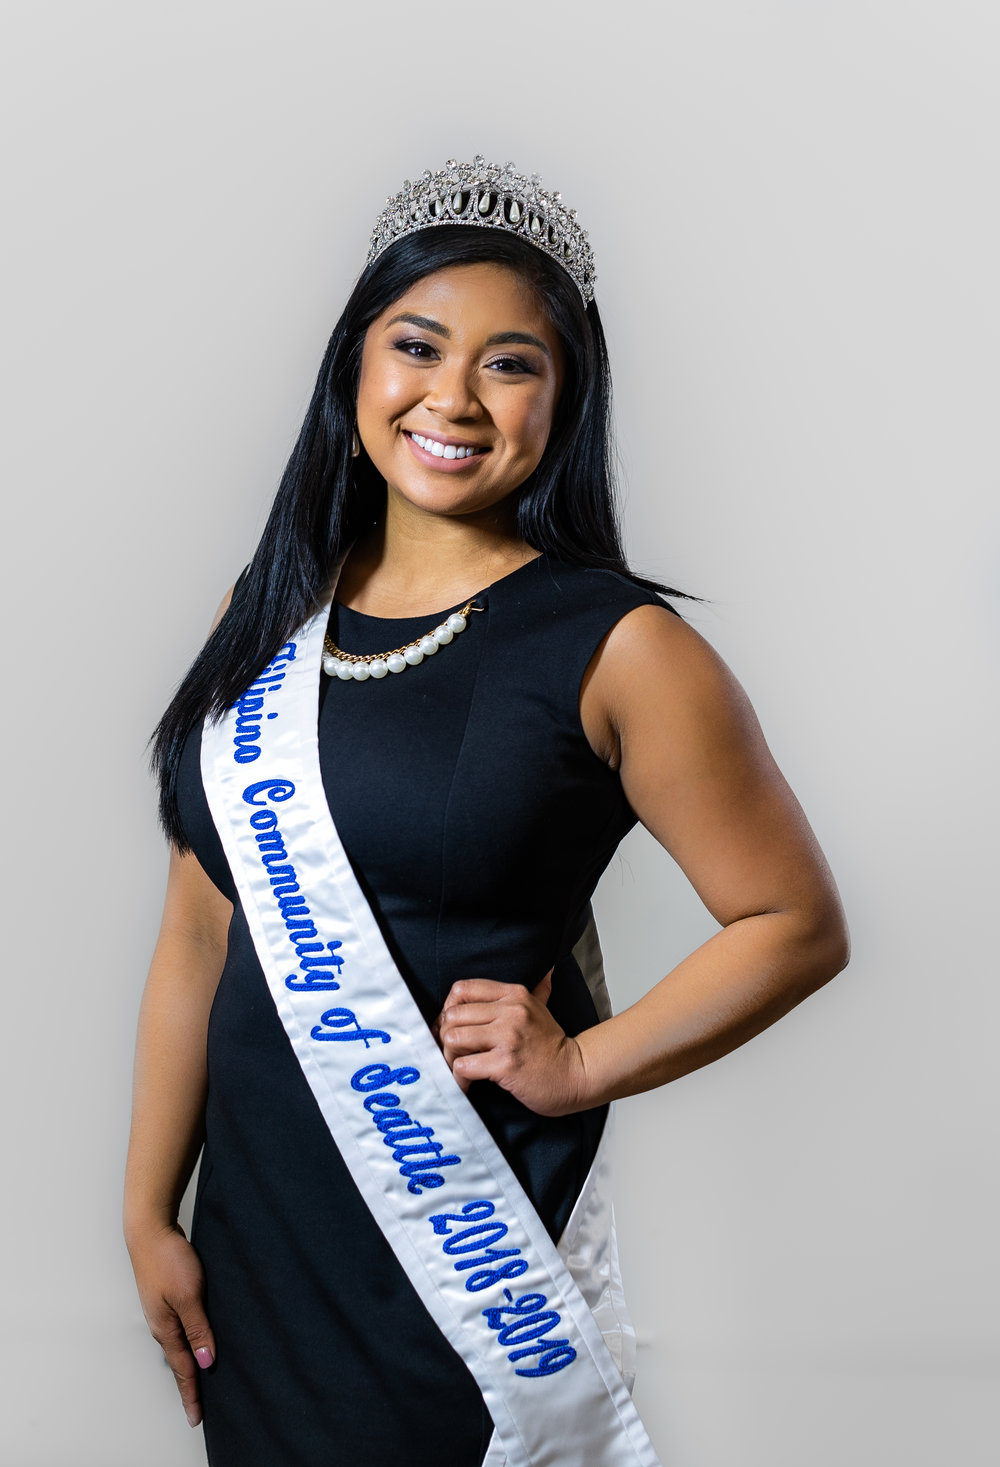 ACHIEVEMENTS - Senior Preceptorship, Tacoma General HospitalBS Nursing, Pacific Lutheran University, Graduation December 2018Miss Seafair 1st Princess, 2018-19Miss Filipino Community of Seattle Seafair Princess, 2018-19World Natural Bodybuilding Federation (WNBF) Competitor, 2014-15American Council of Exercise Certified Personal Trainer, 2014-16Venice Nutrition Certified Health and Nutrition Coach, 2014-16Western Washington University Cheerleader, 2013-14